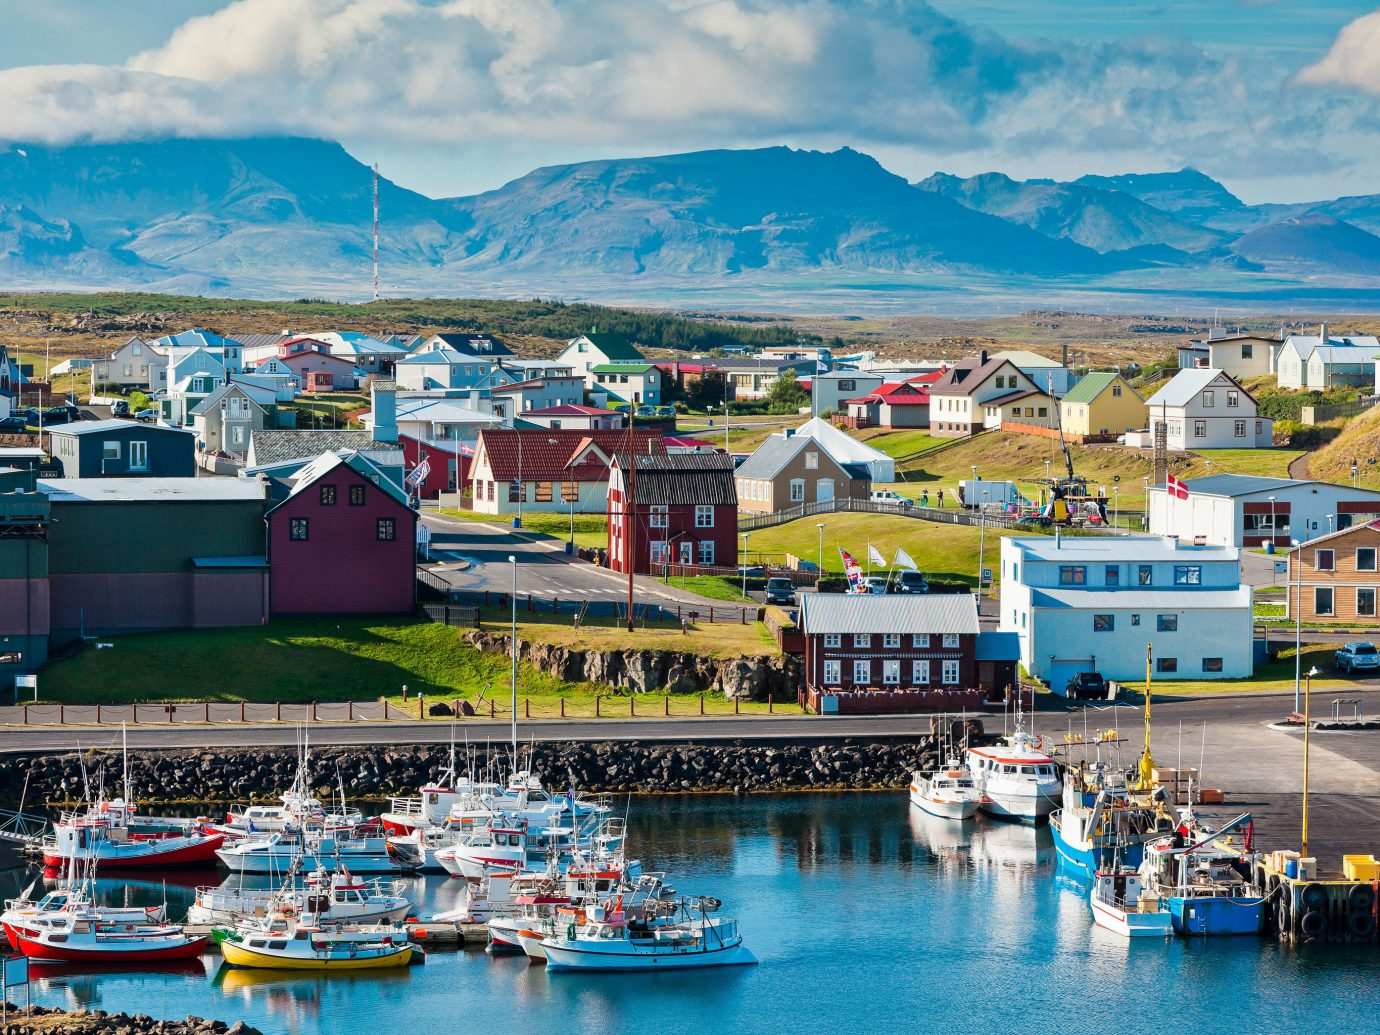 Iceland Travel Tips water sky scene Boat Harbor mountain outdoor Town Sea vacation vehicle tourism Coast passenger ship bay port boating cityscape cruise ship fjord marina dock